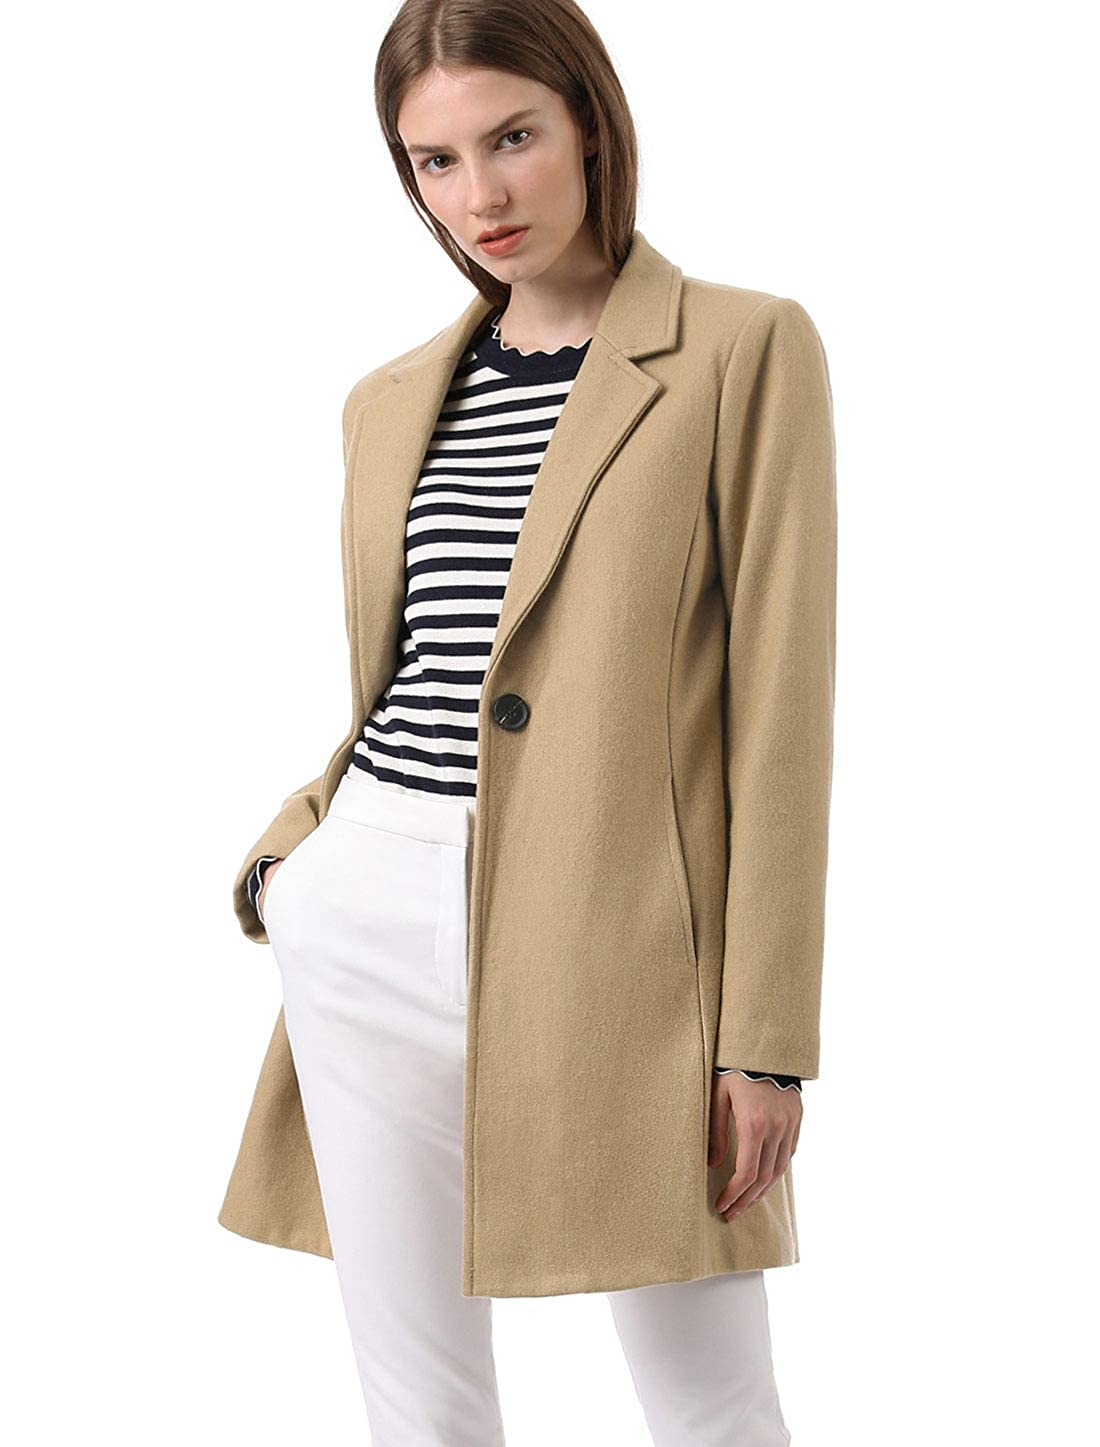 Allegra K Women's Notched Lapel One Button Winter Coat g18041900ux0002